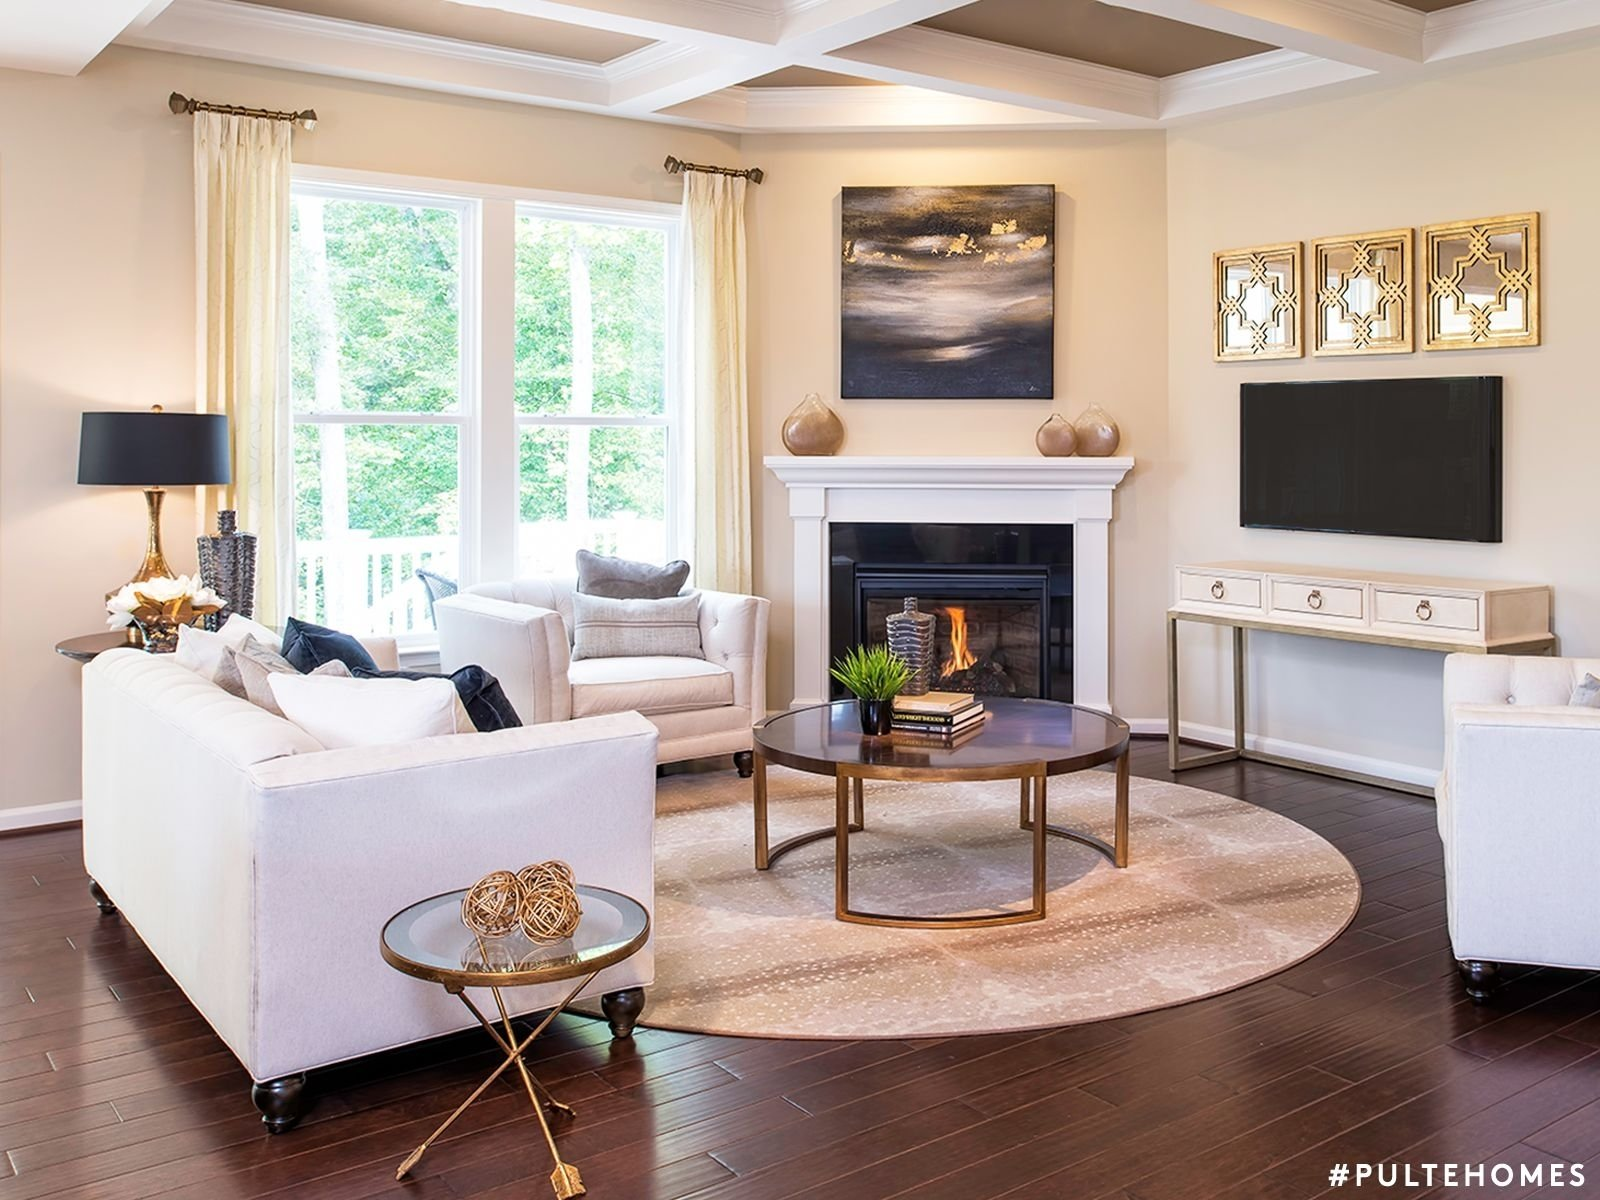 10 Elegant Living Room Ideas With Fireplace 27 stunning fireplace tile ideas for your home round rugs modern 1 2021